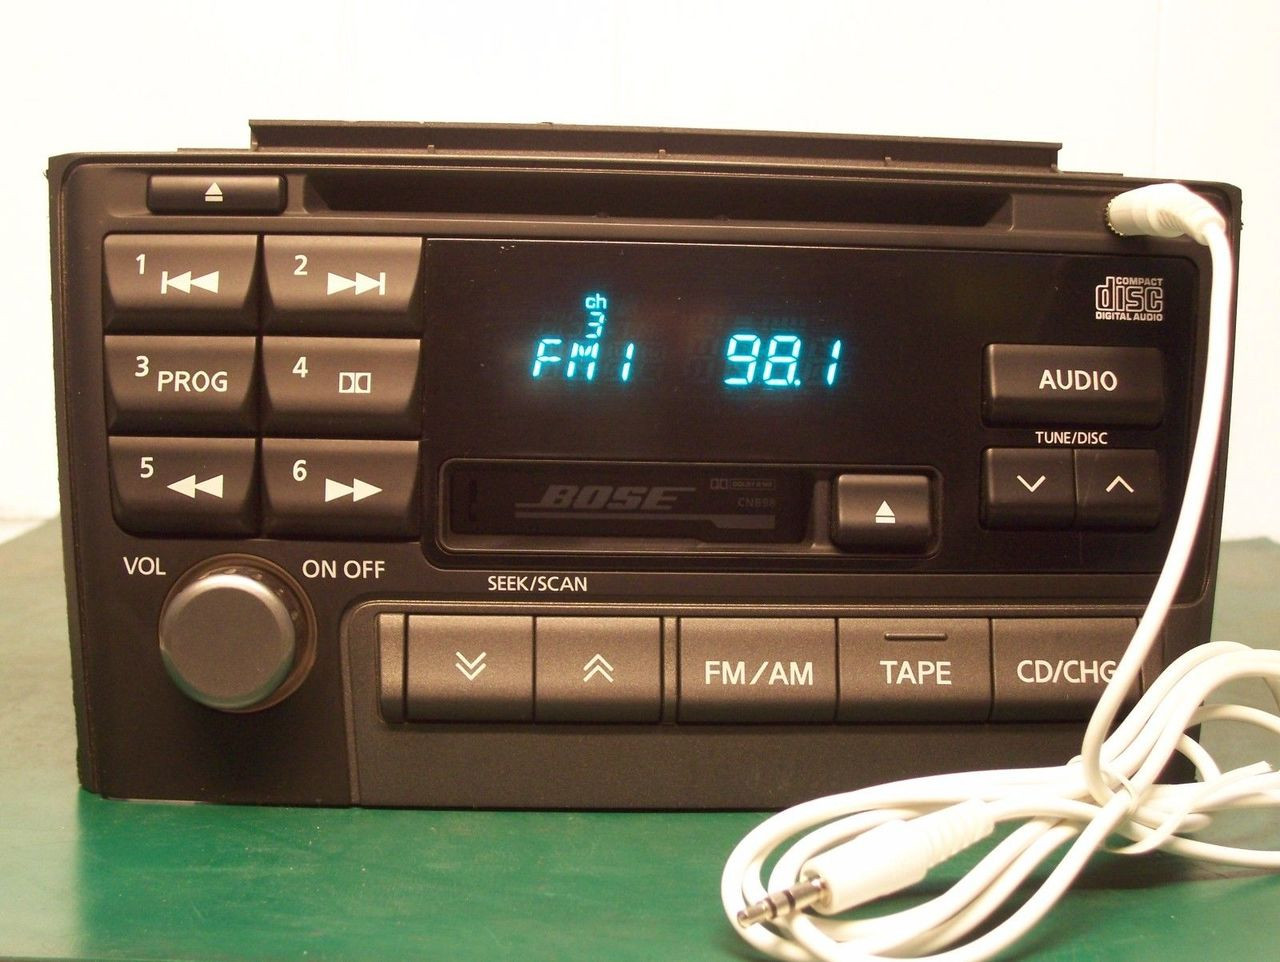 details about 2000 2003 nissan maxima bose radio cd player added aux input cnb98 [ 1280 x 962 Pixel ]